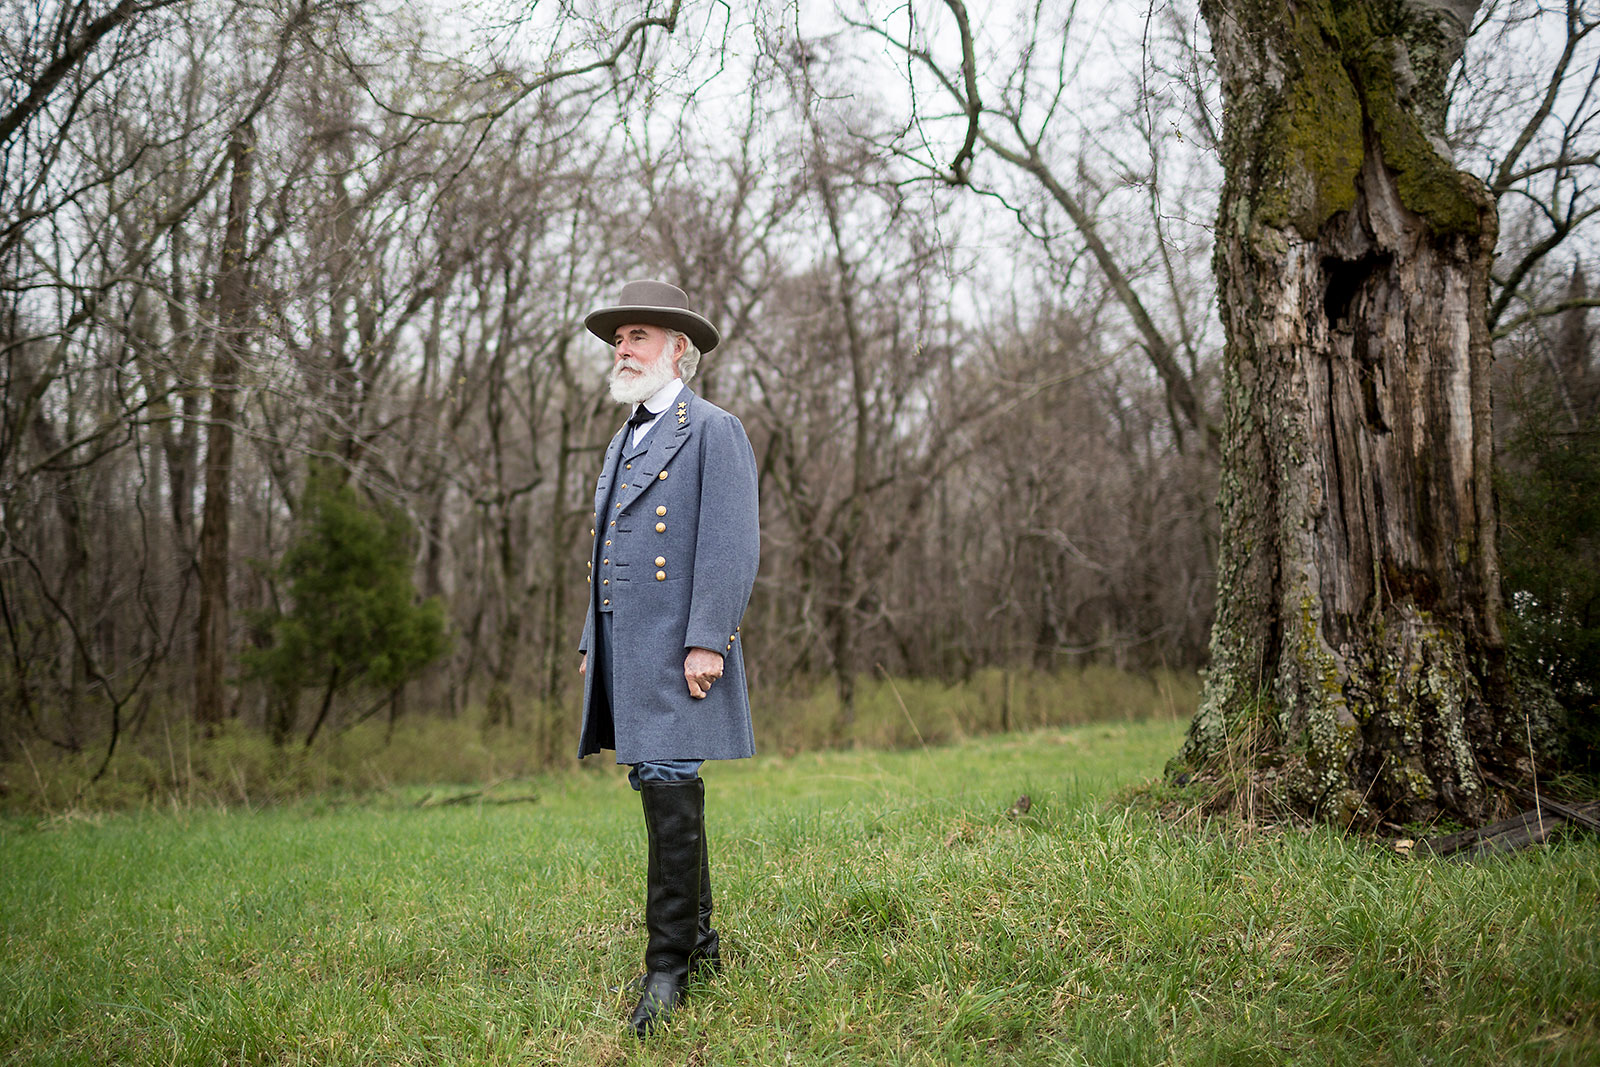 Thomas Jessee, portrays Confederate General Robert E. Lee during sesquicentennial at Appomattox.